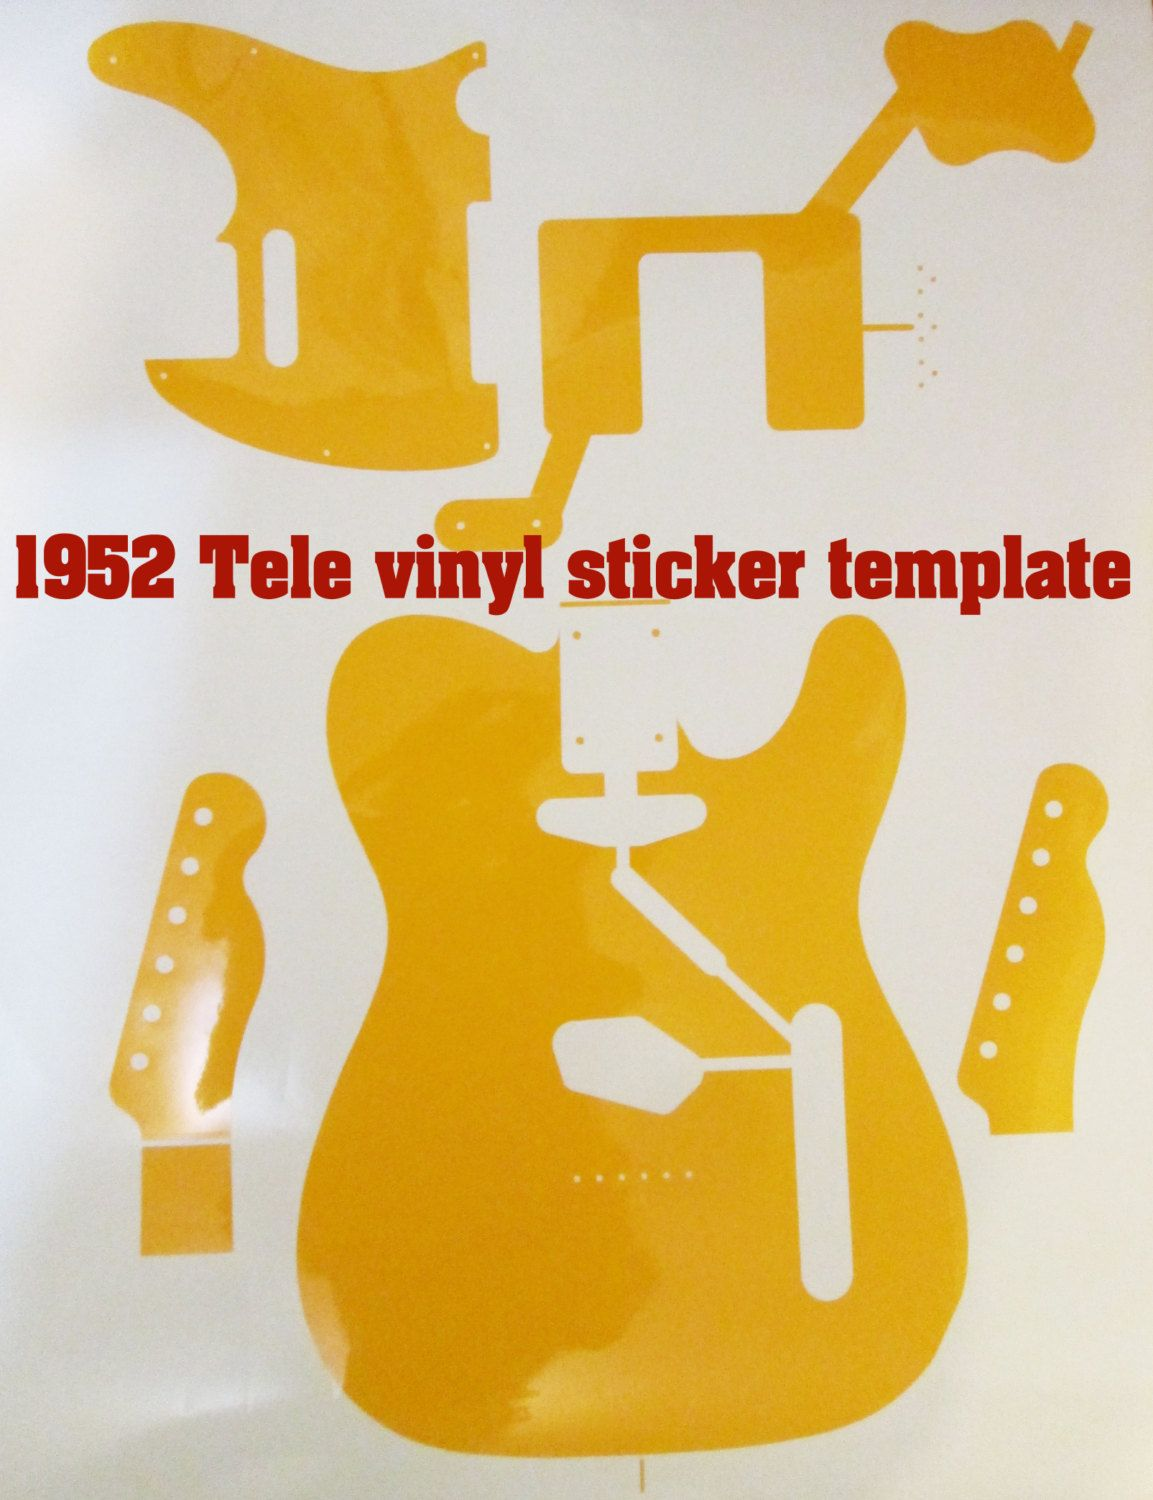 Telecaster routing template for guitar making 1952 telecaster body telecaster routing template for guitar making 1952 telecaster body vinyl sticker body tempalte maxwellsz